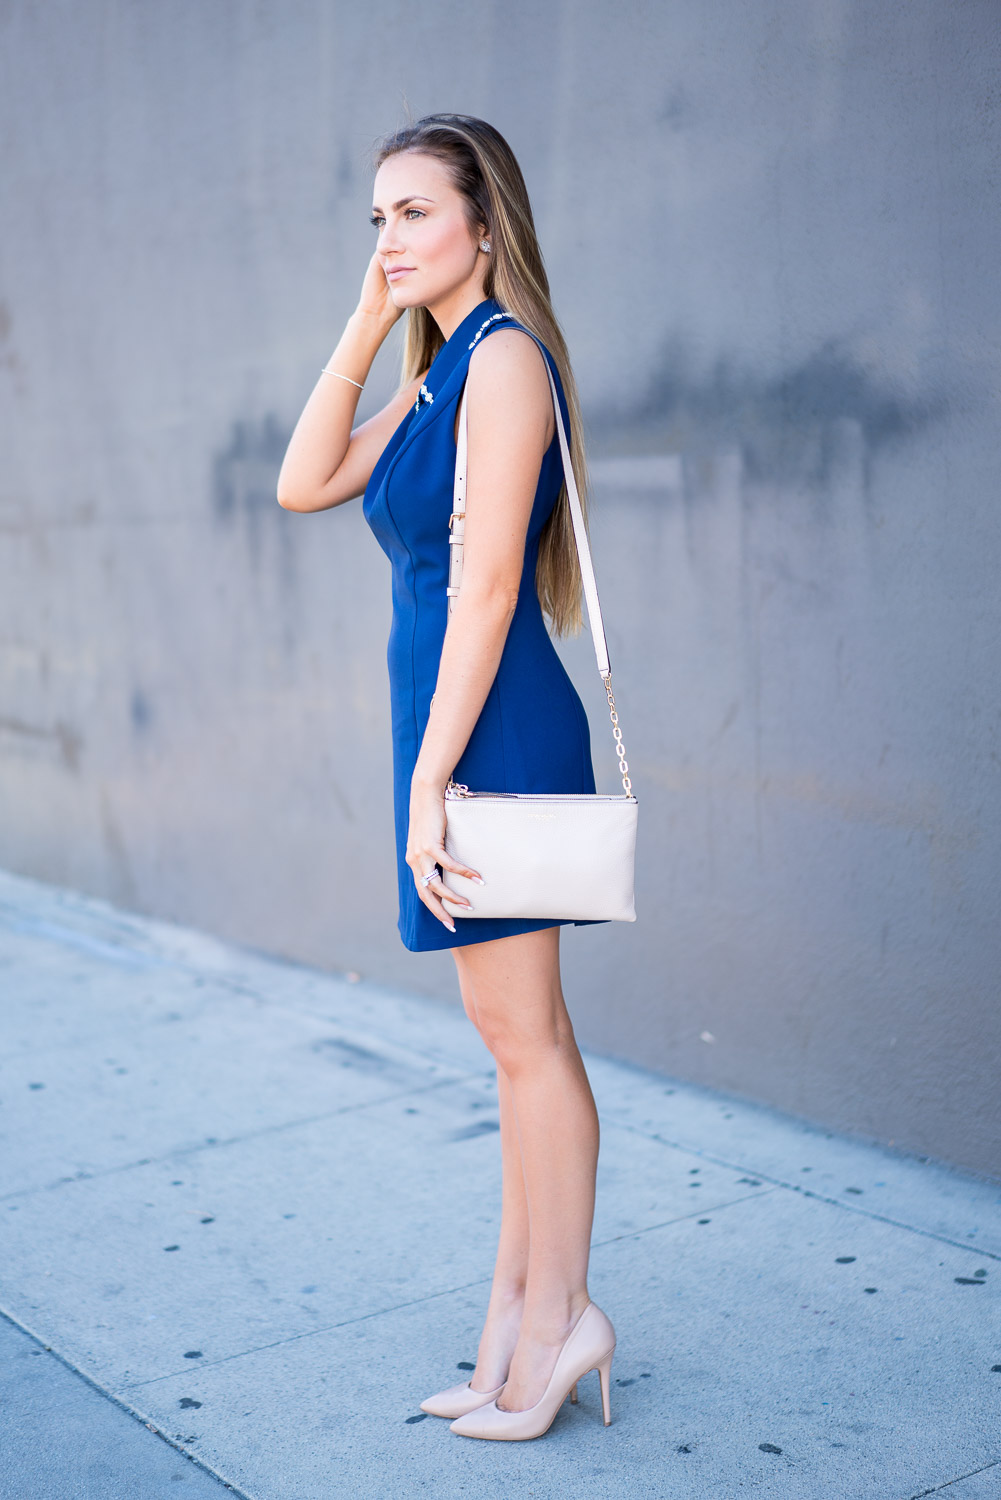 Blue Dress With Nude Heels - Is Heel